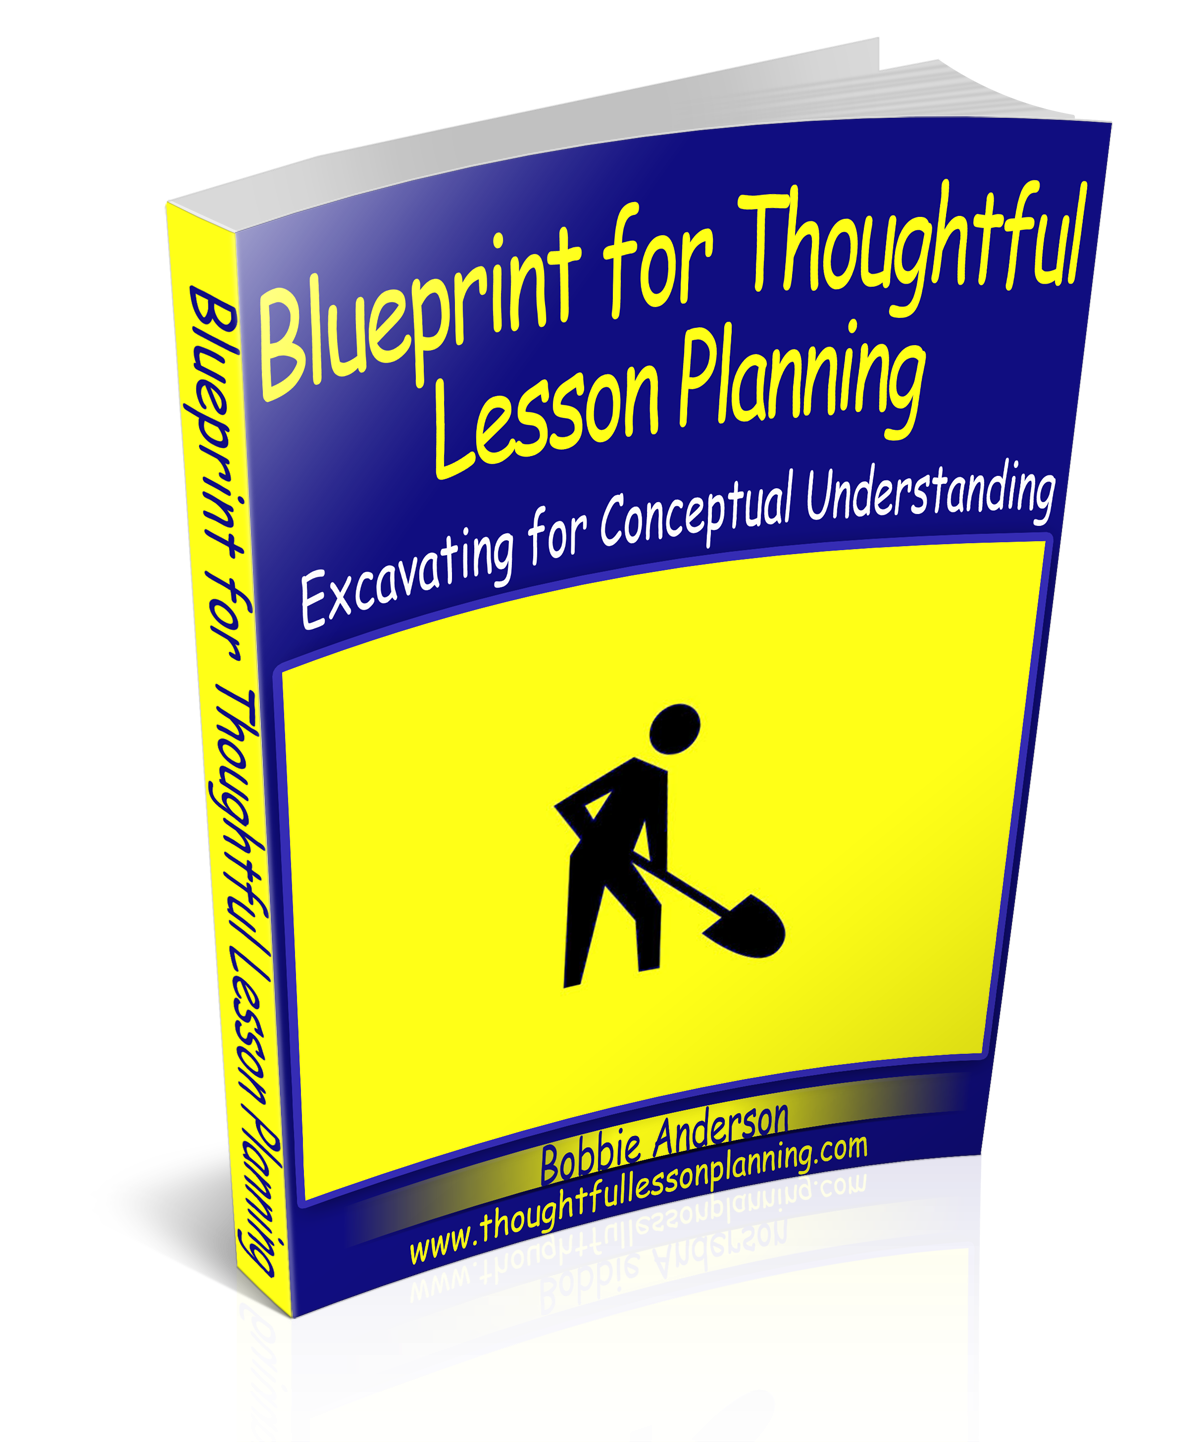 Blueprint For Thoughtful Lesson Planning By: Bobbie Anderson